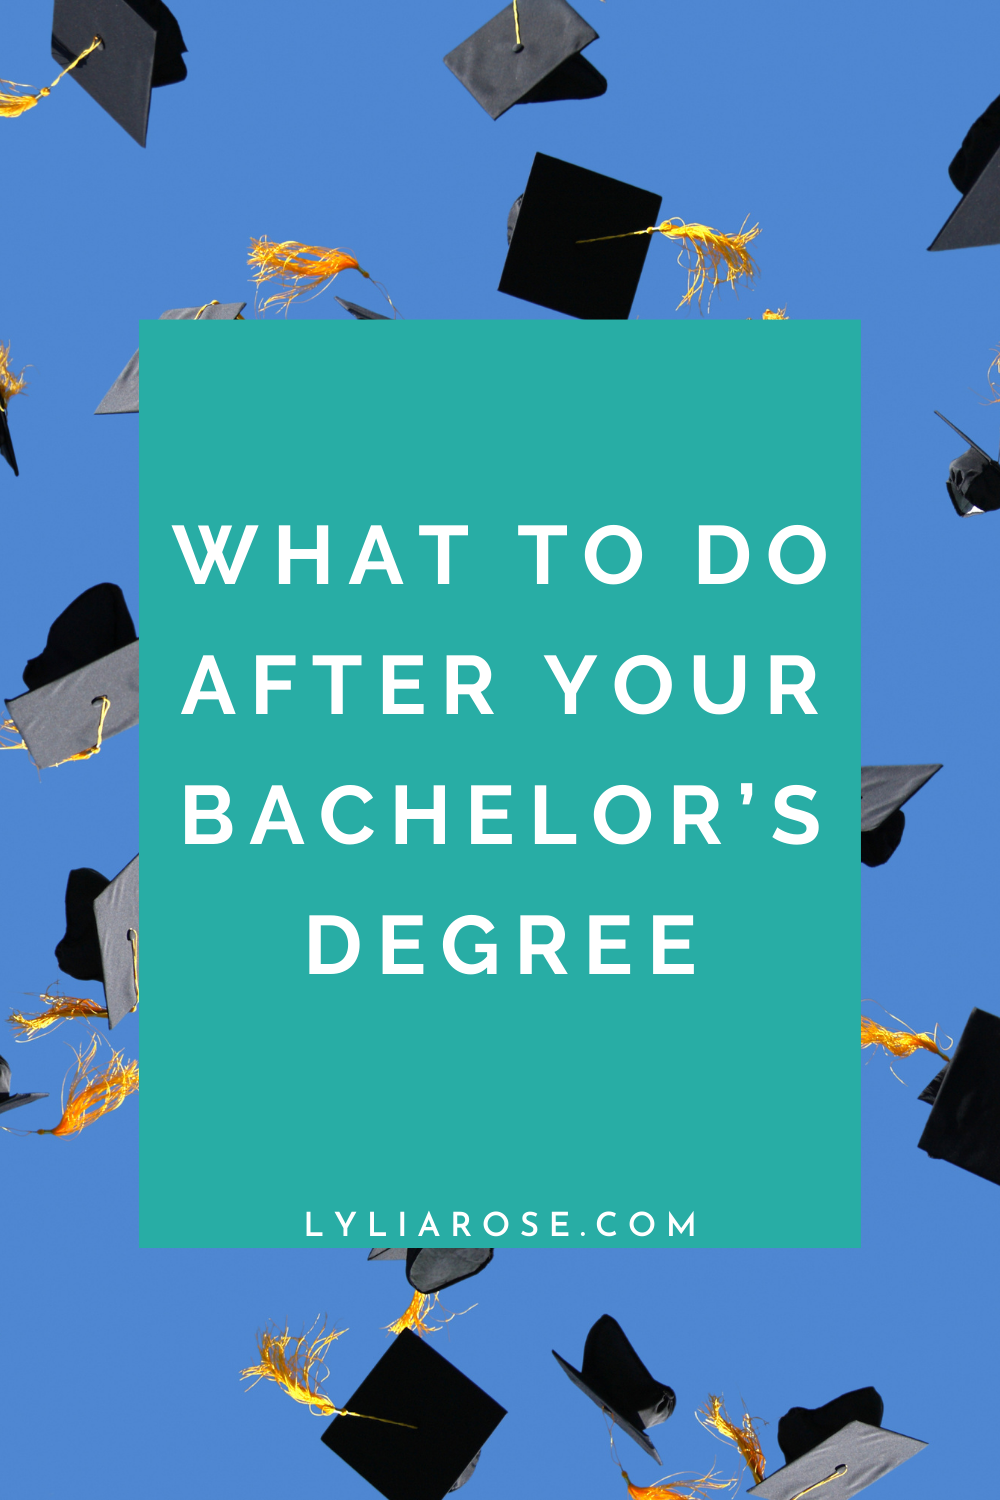 What to do after your bachelor's degree